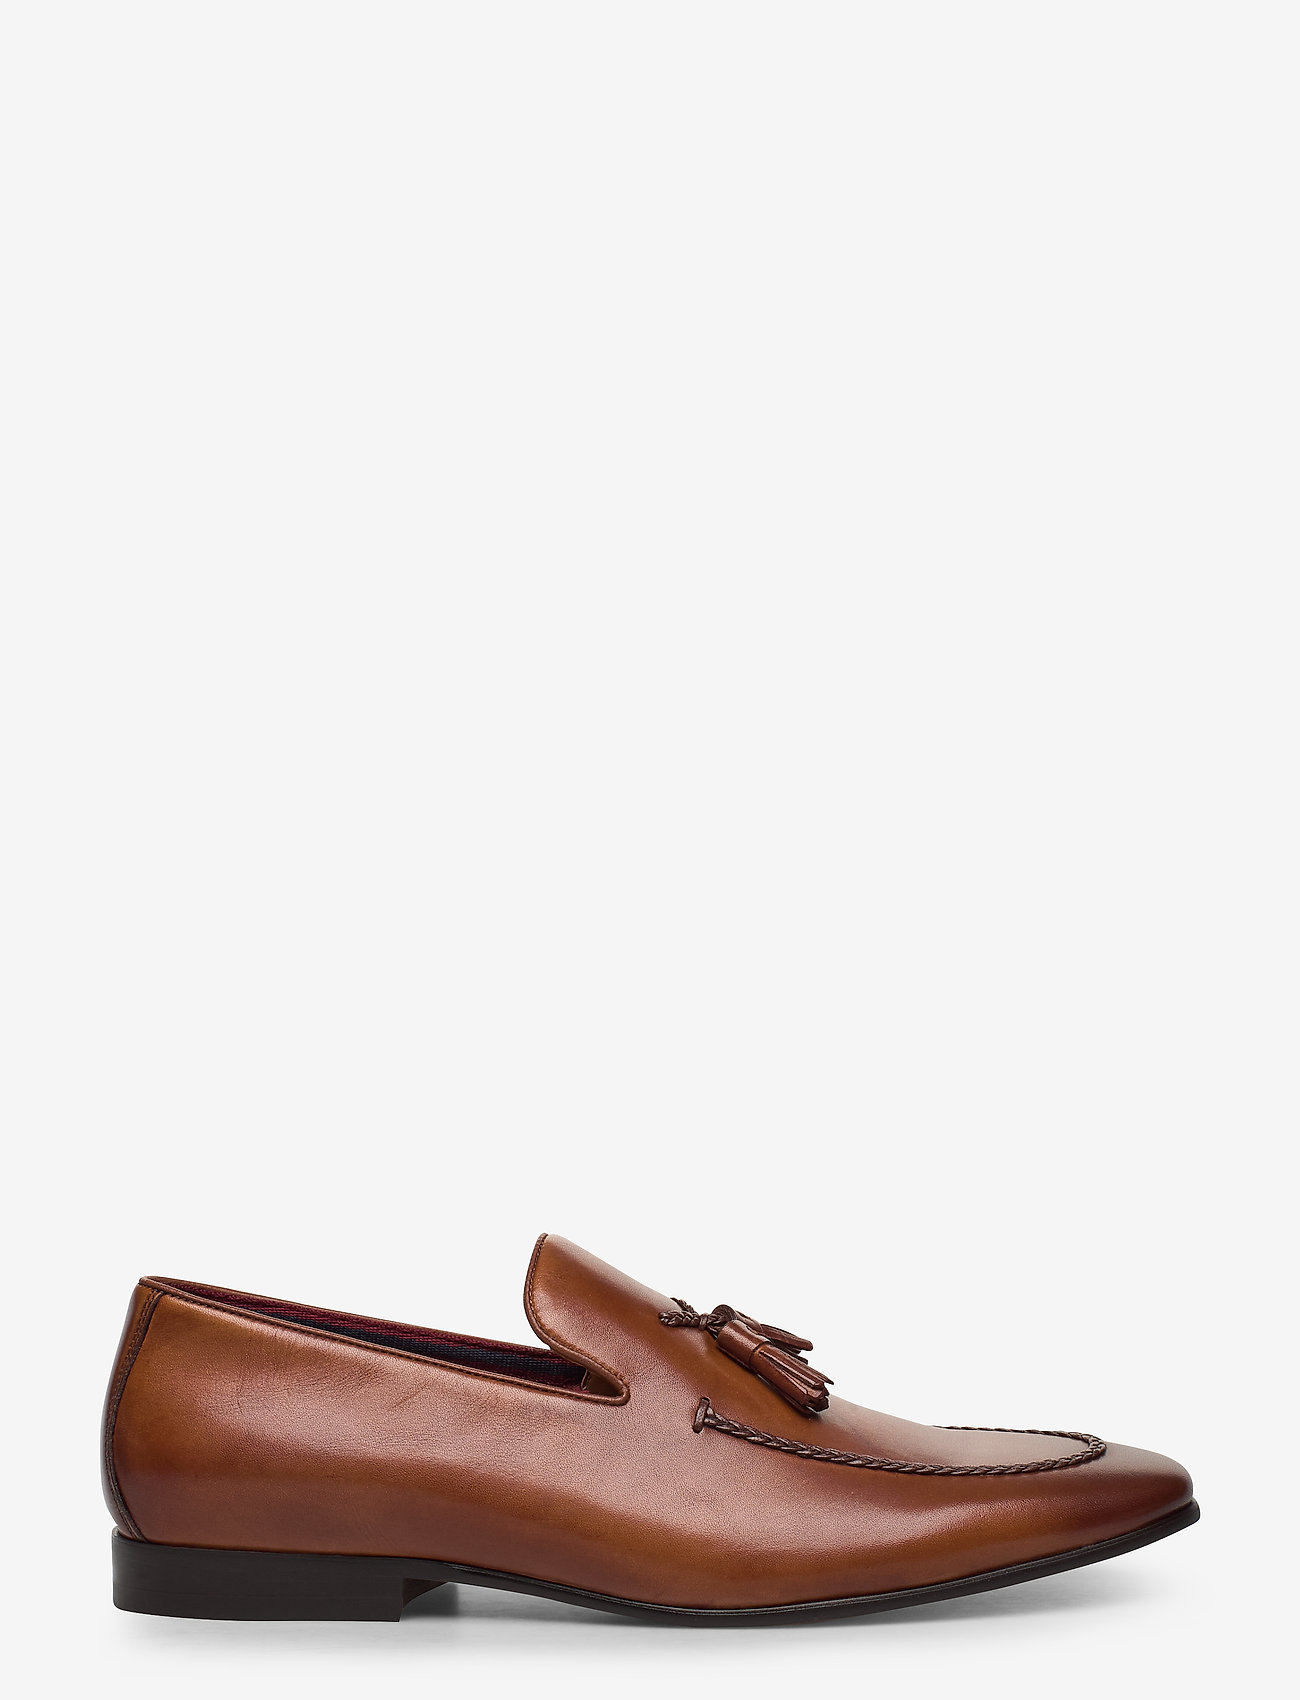 Dune London - Spirited - loafers - tan - leather - 1